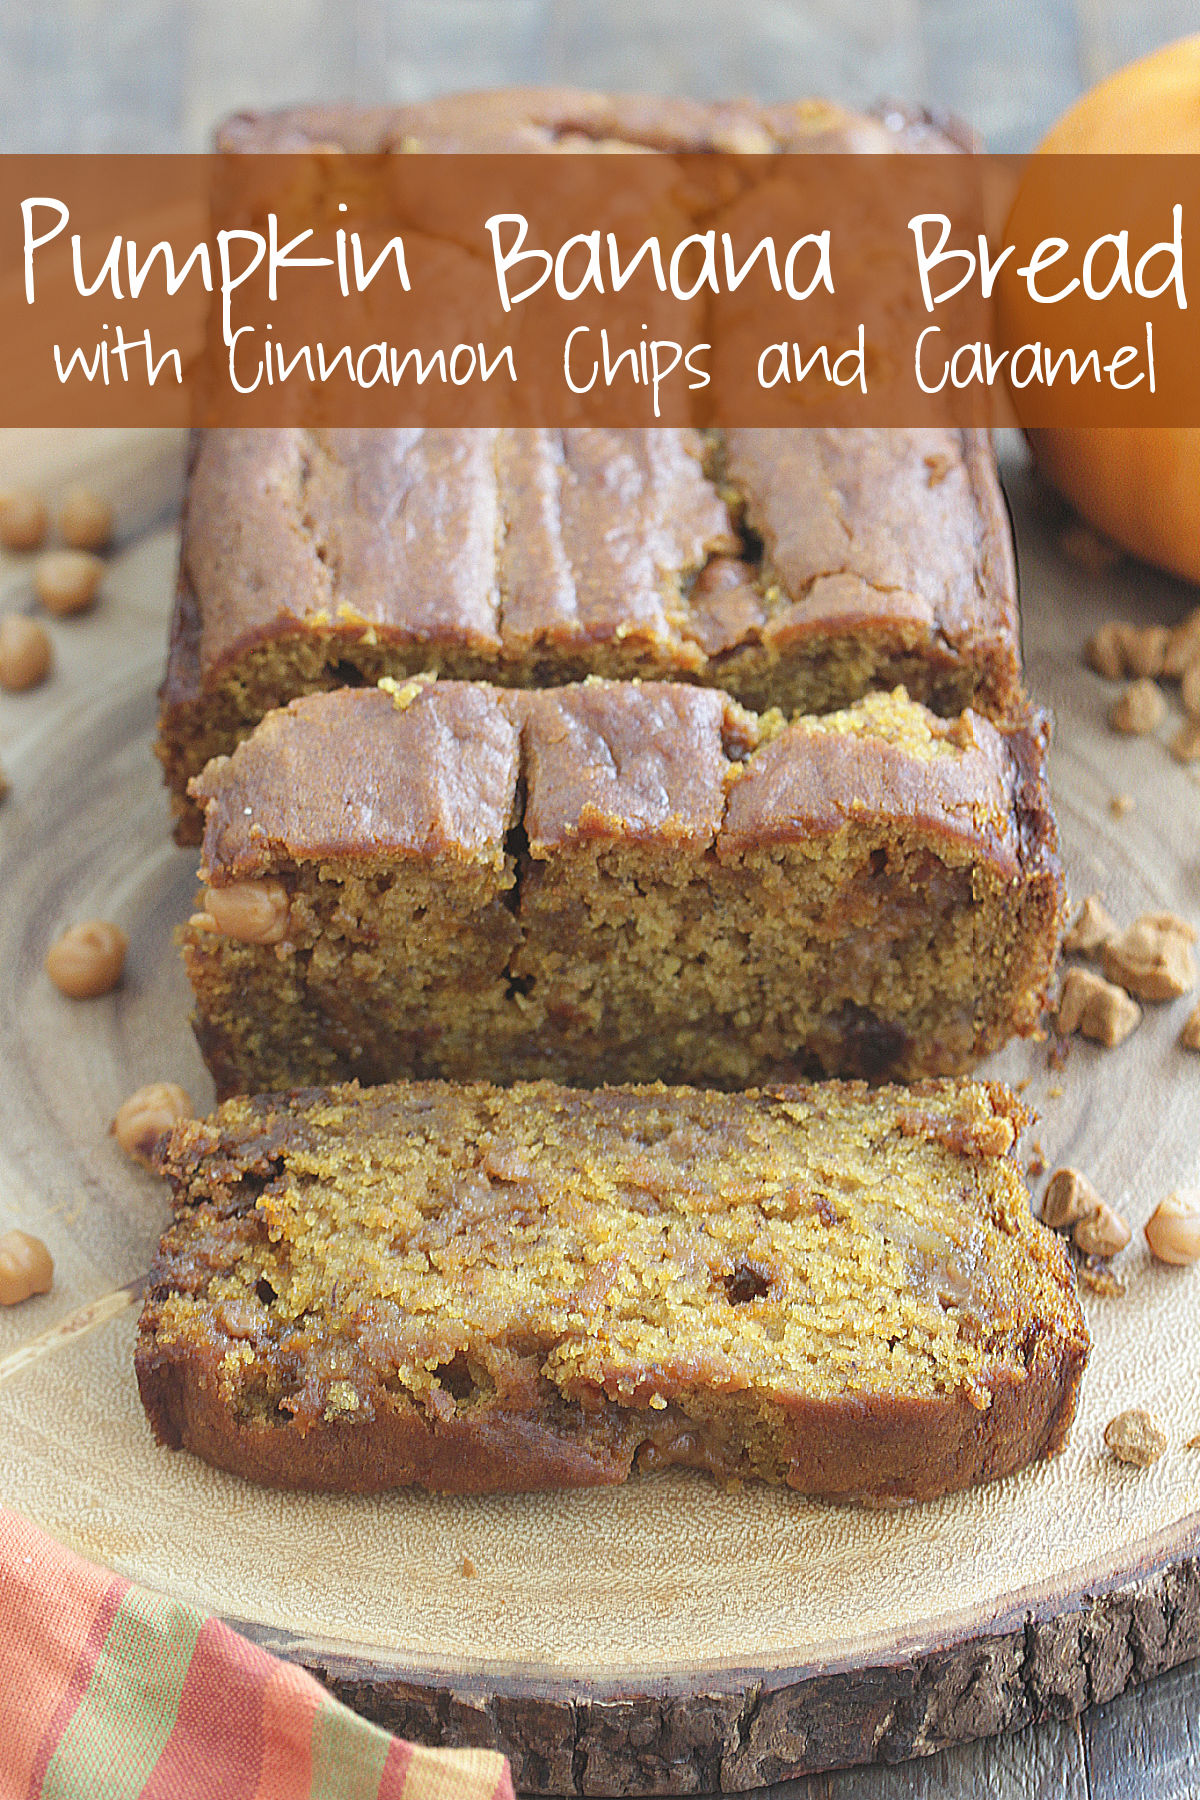 Pumpkin Banana Bread with Cinnamon Chips and Caramel